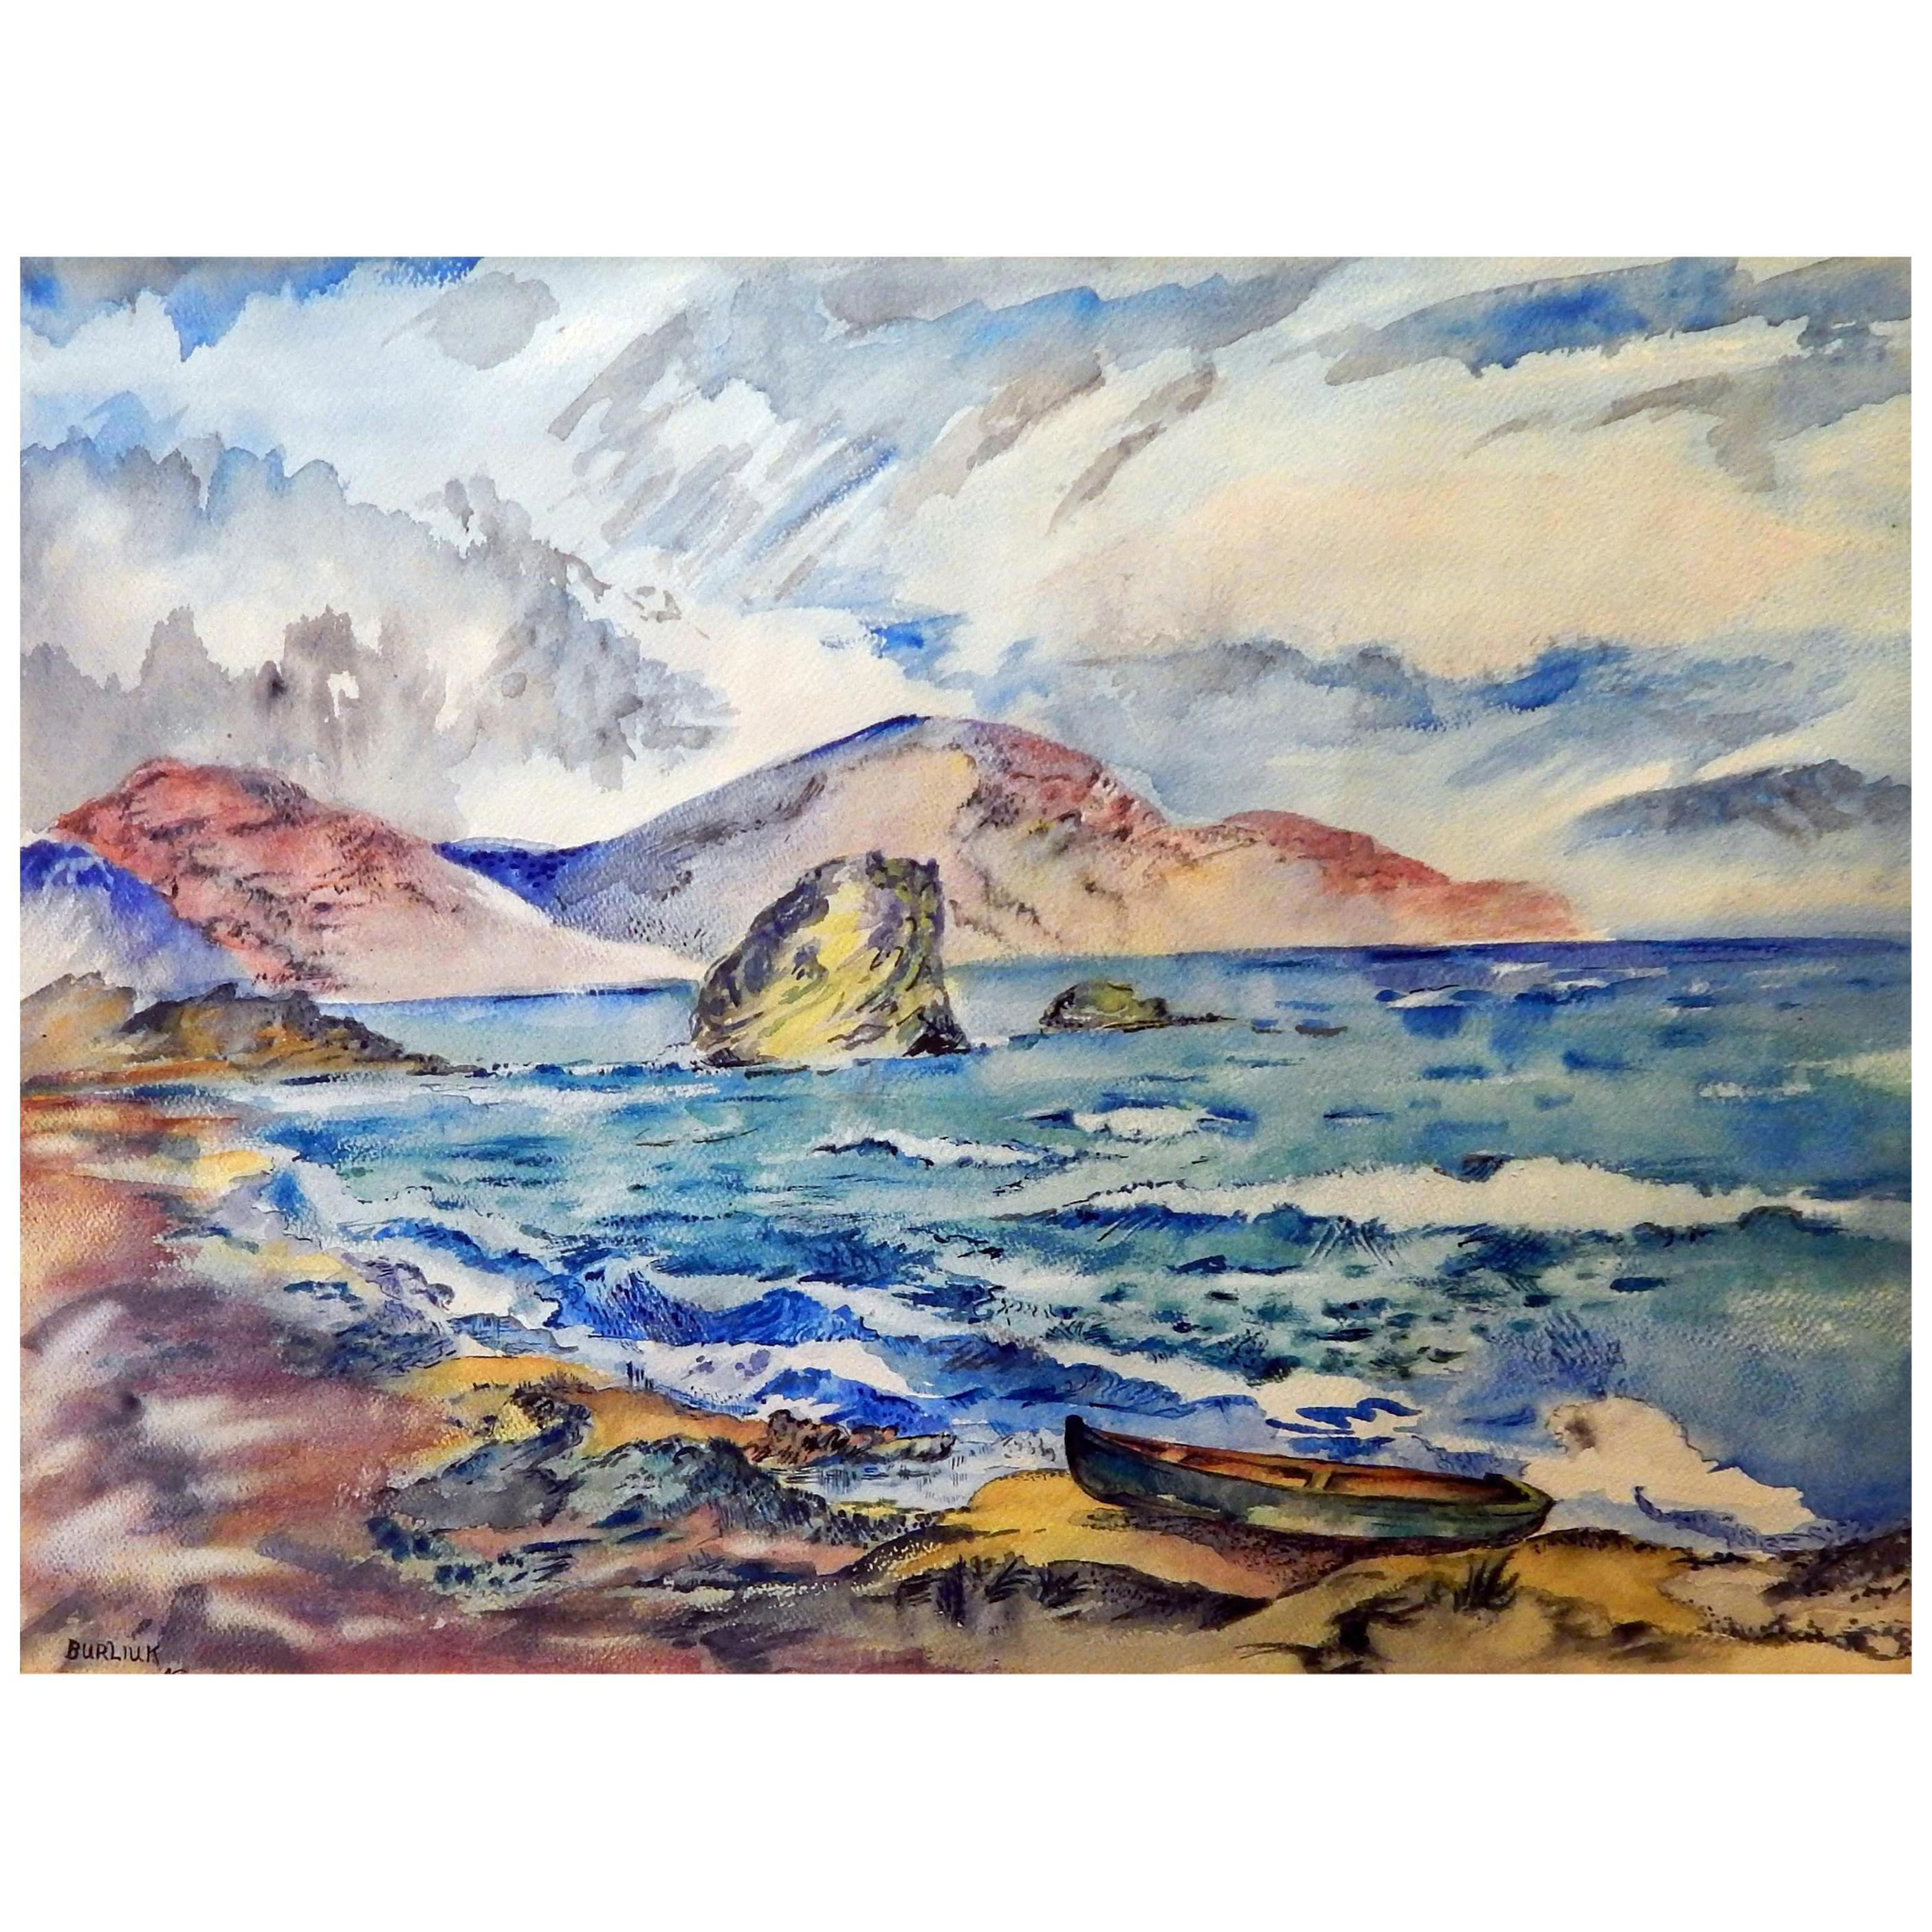 David Burliuk Signed Watercolor, 1947, Seascape